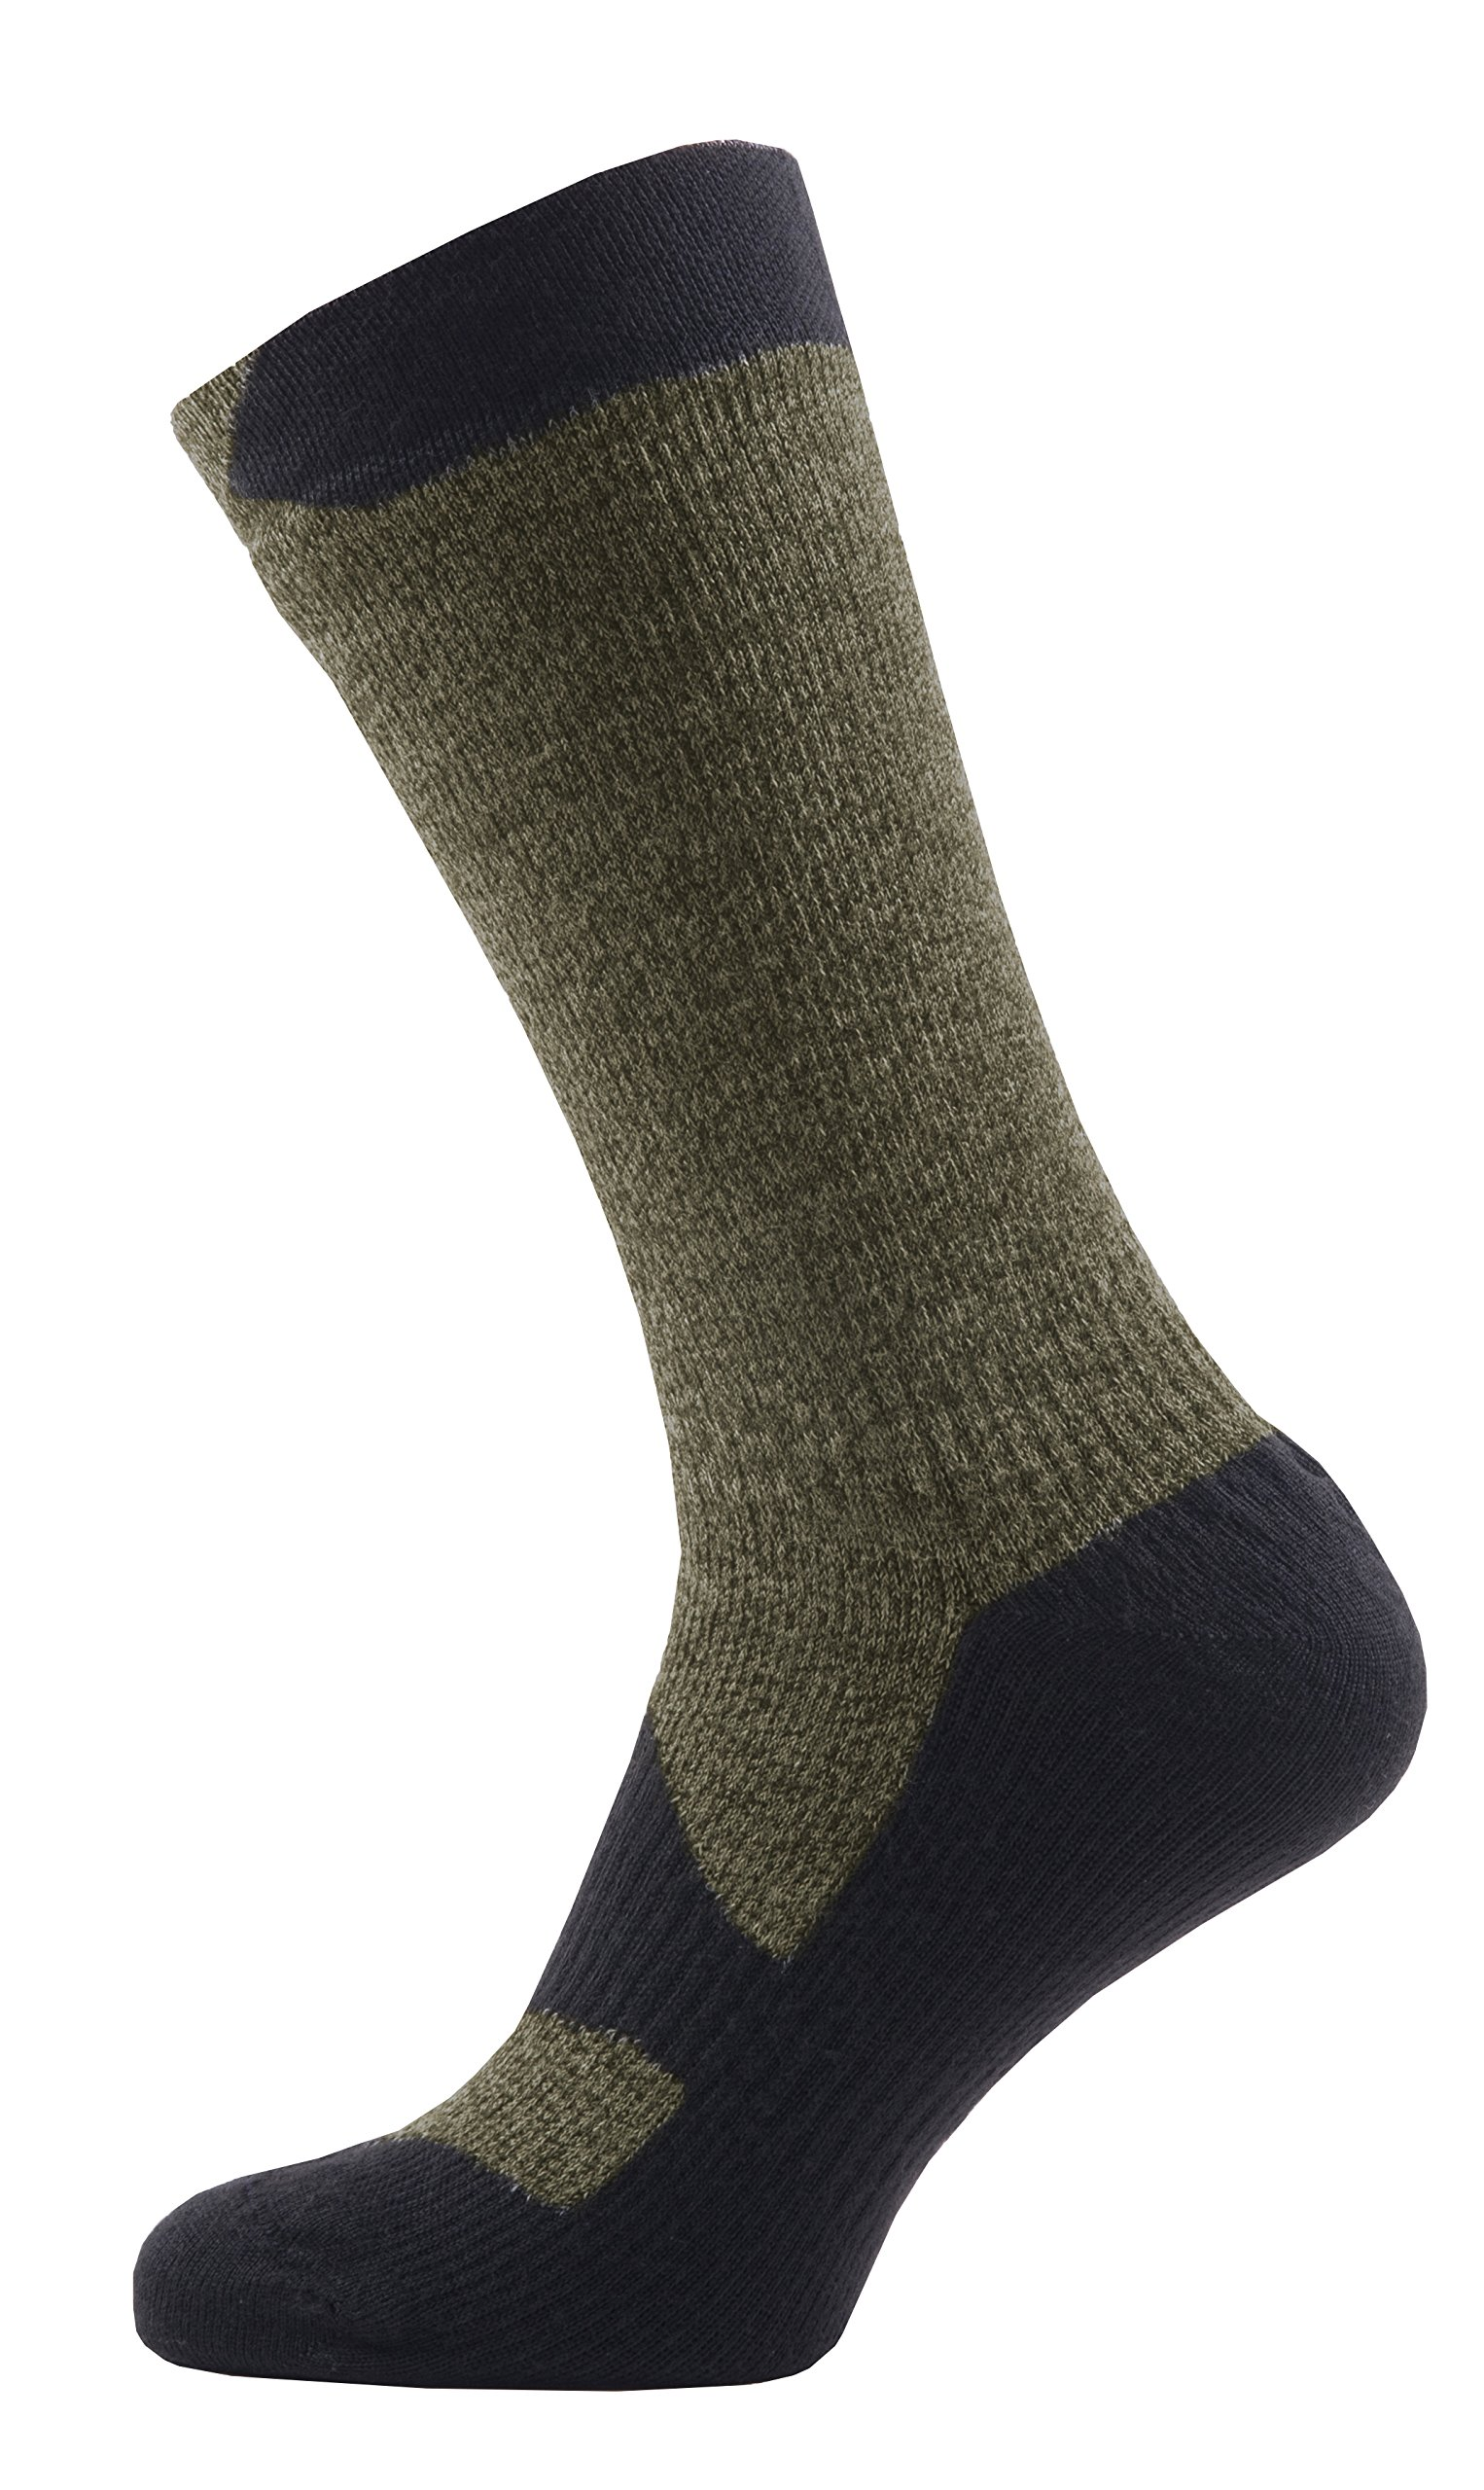 SealSkinz Walking Thin Mid socks, Small - Olive Marl/Charcoal. With a Helicase brand sock ring